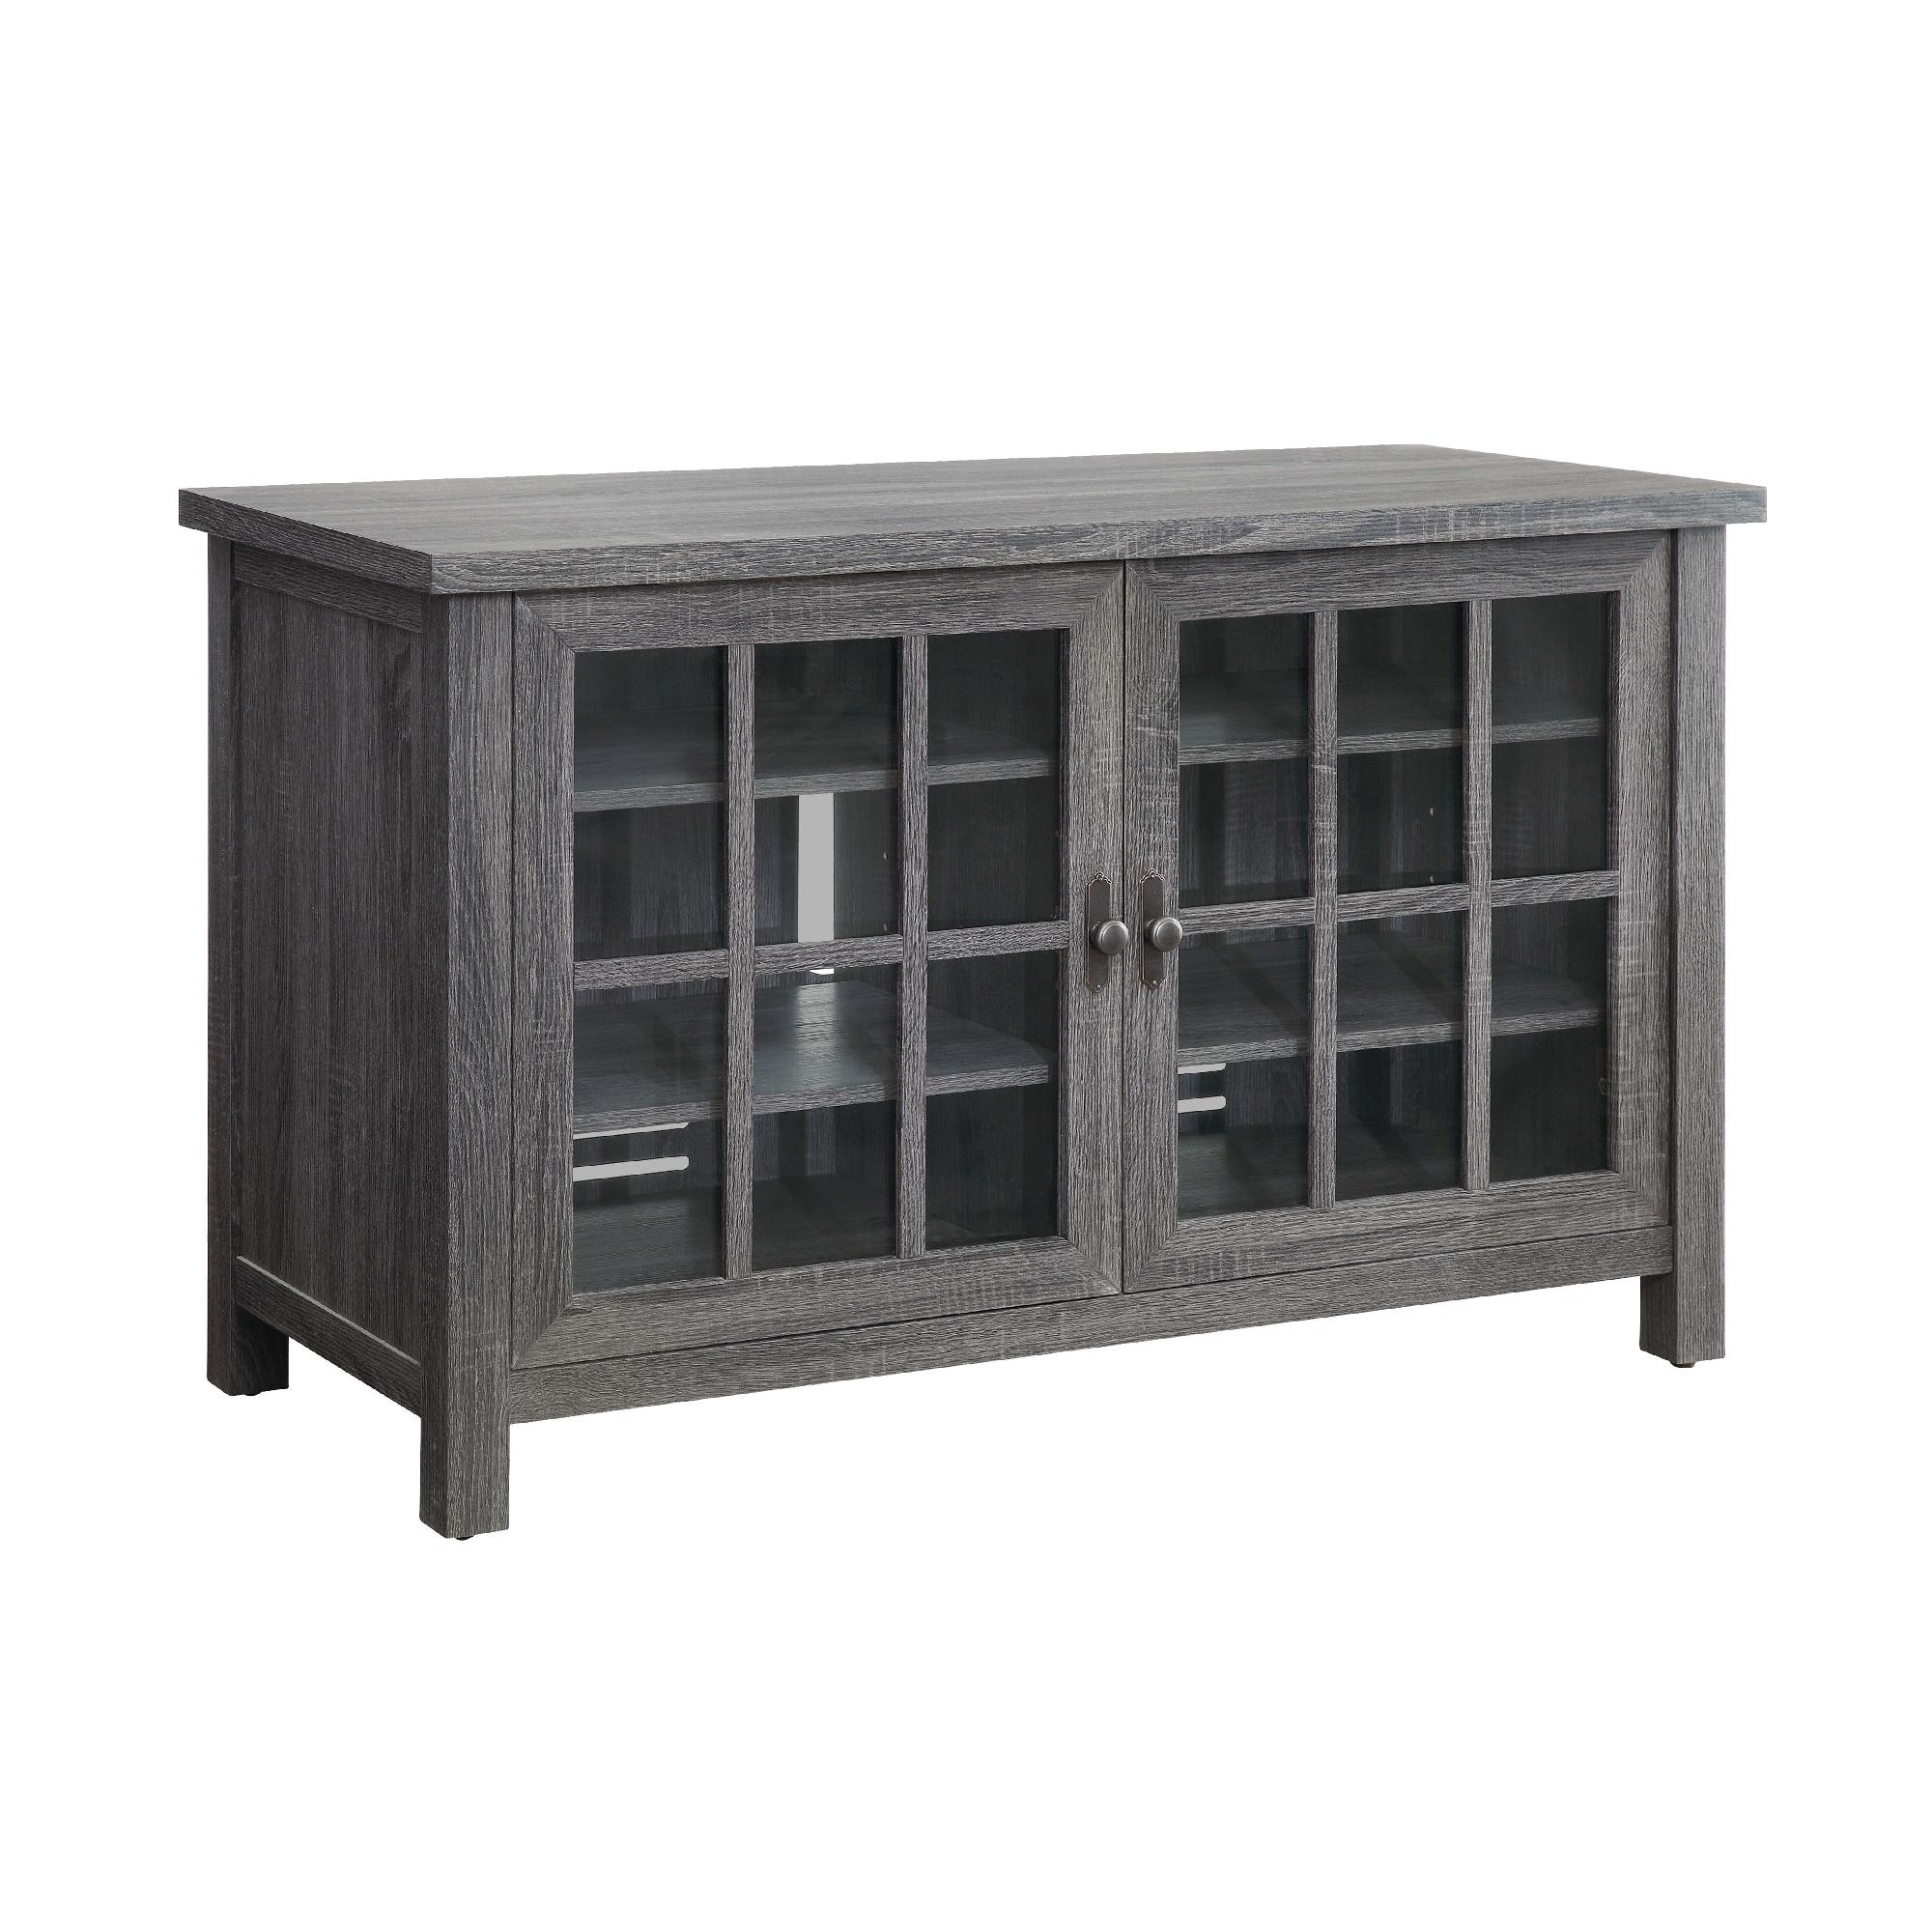 Better Homes And Gardens Oxford Square Tv Console For Tvs Up To 55 Pertaining To Oxford 70 Inch Tv Stands (View 17 of 30)